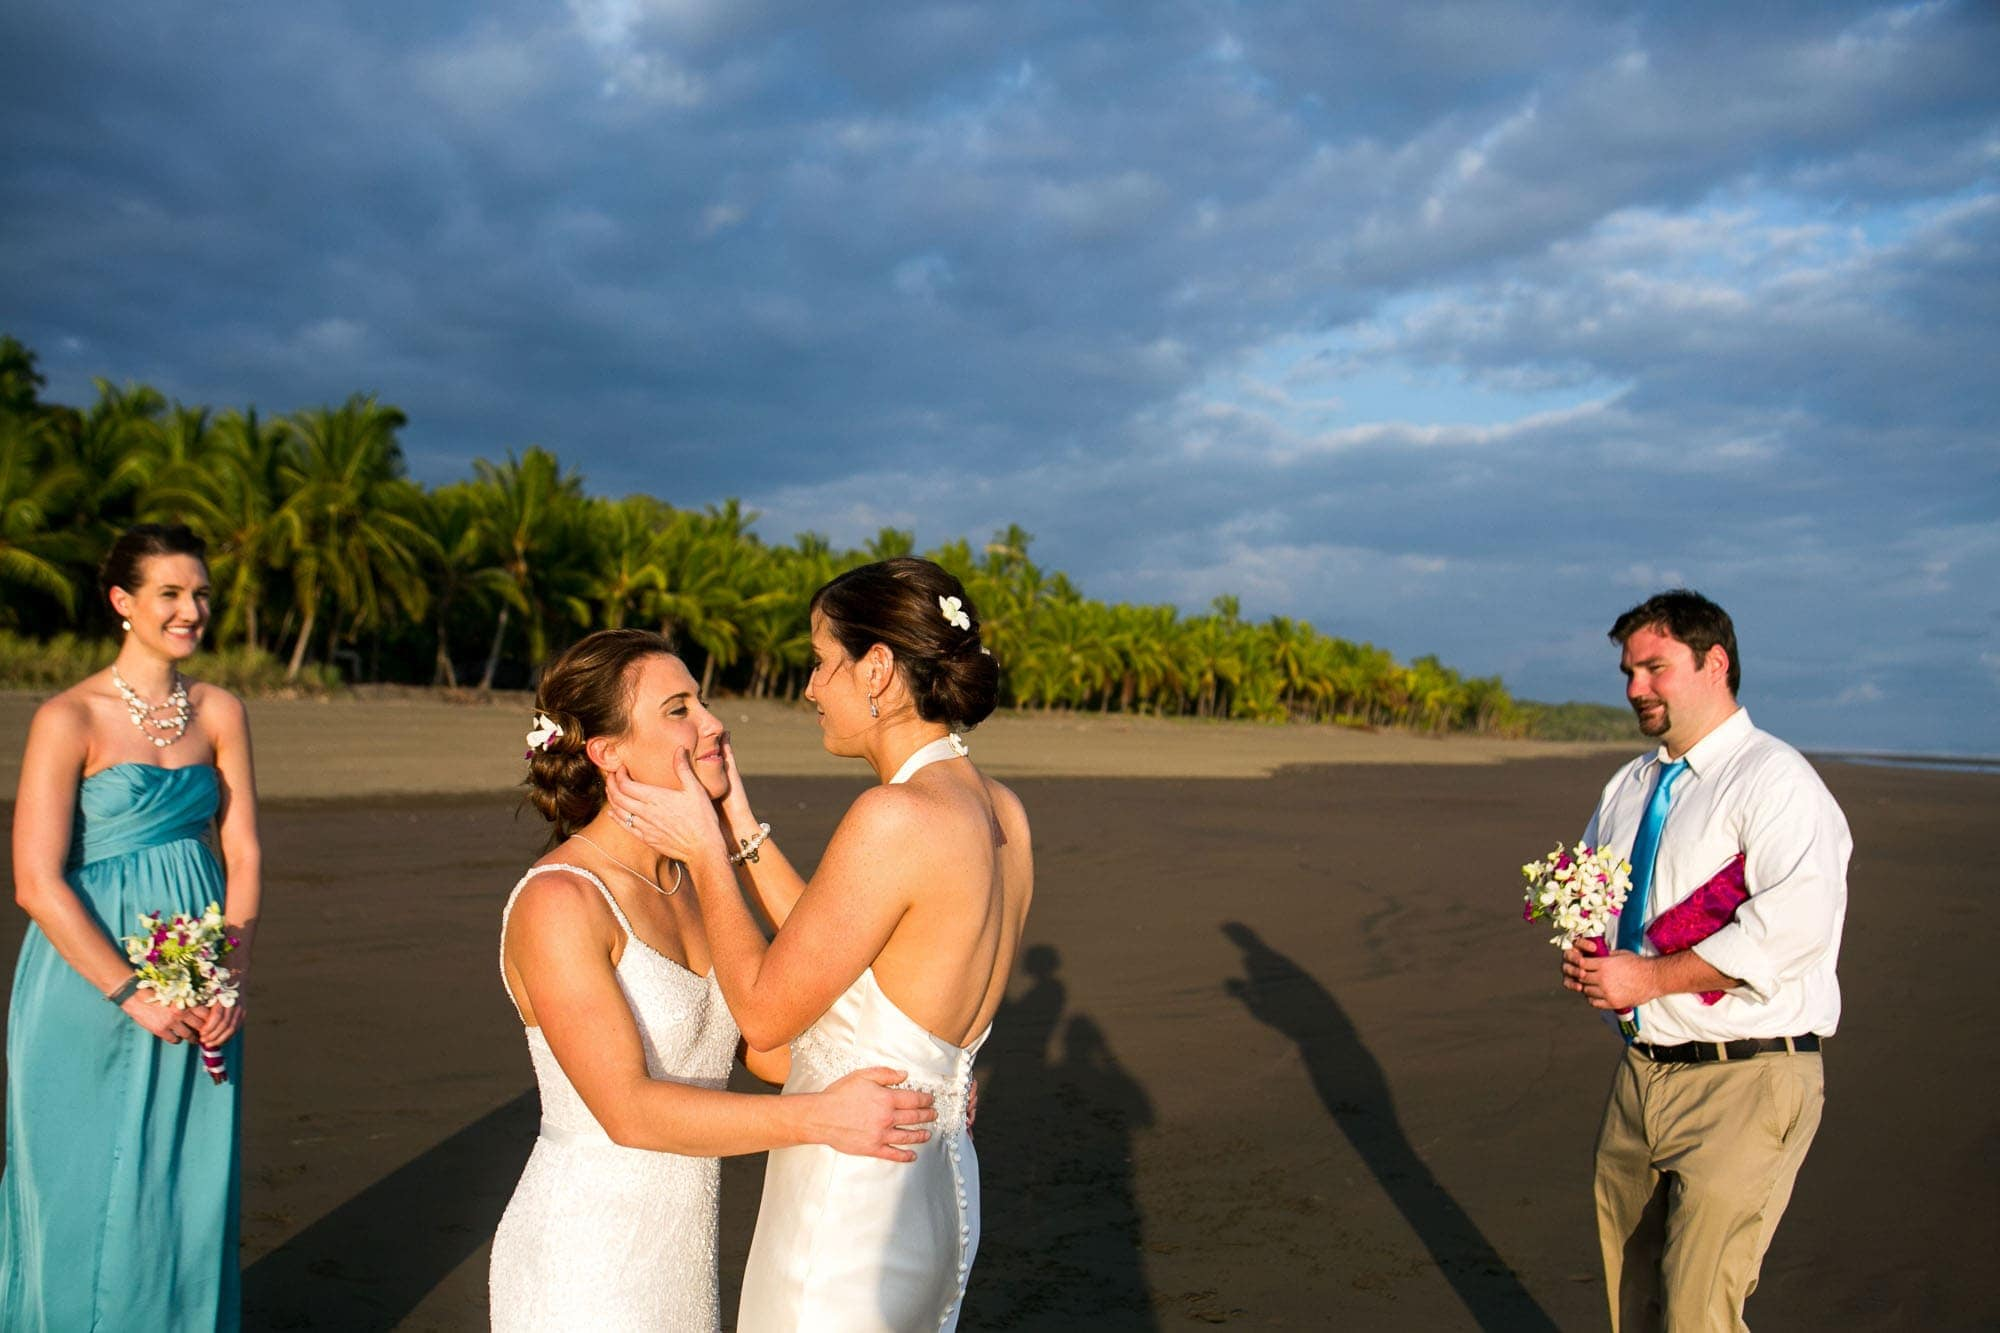 Same sex wedding on beach in costa rica